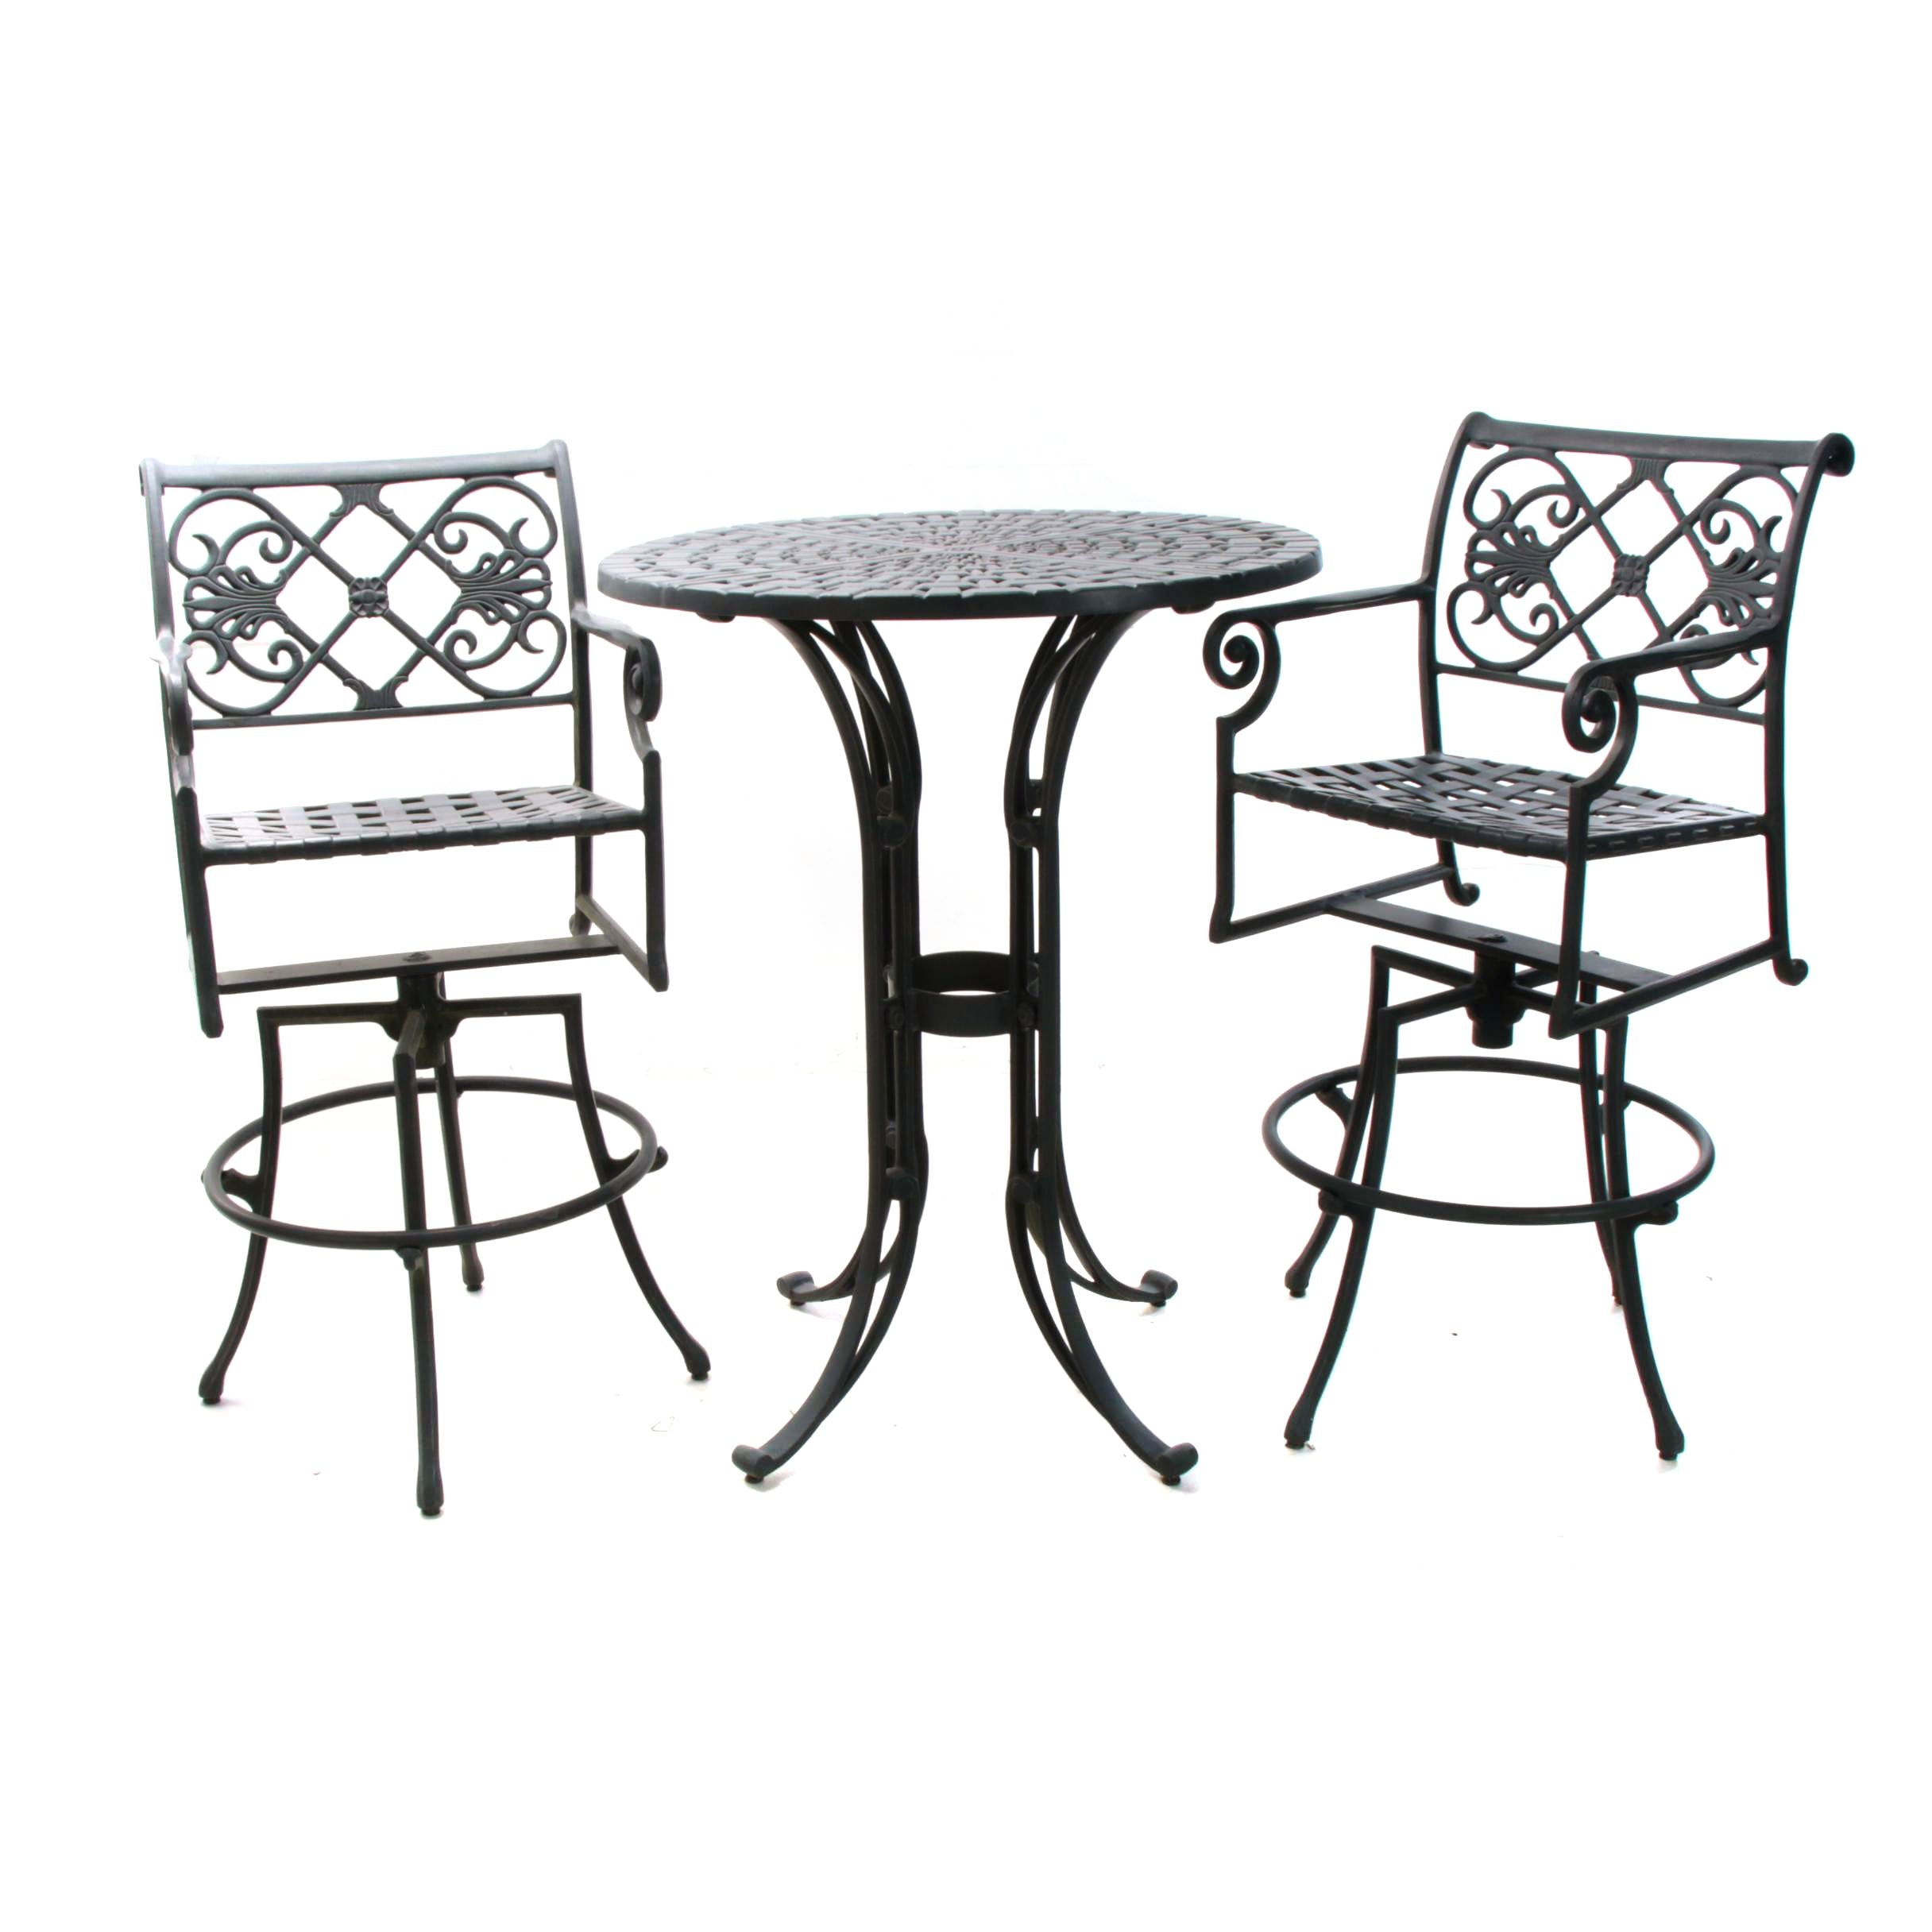 Contemporary Cast-Aluminum Three-Piece Patio Bistro Set by Windham Castings